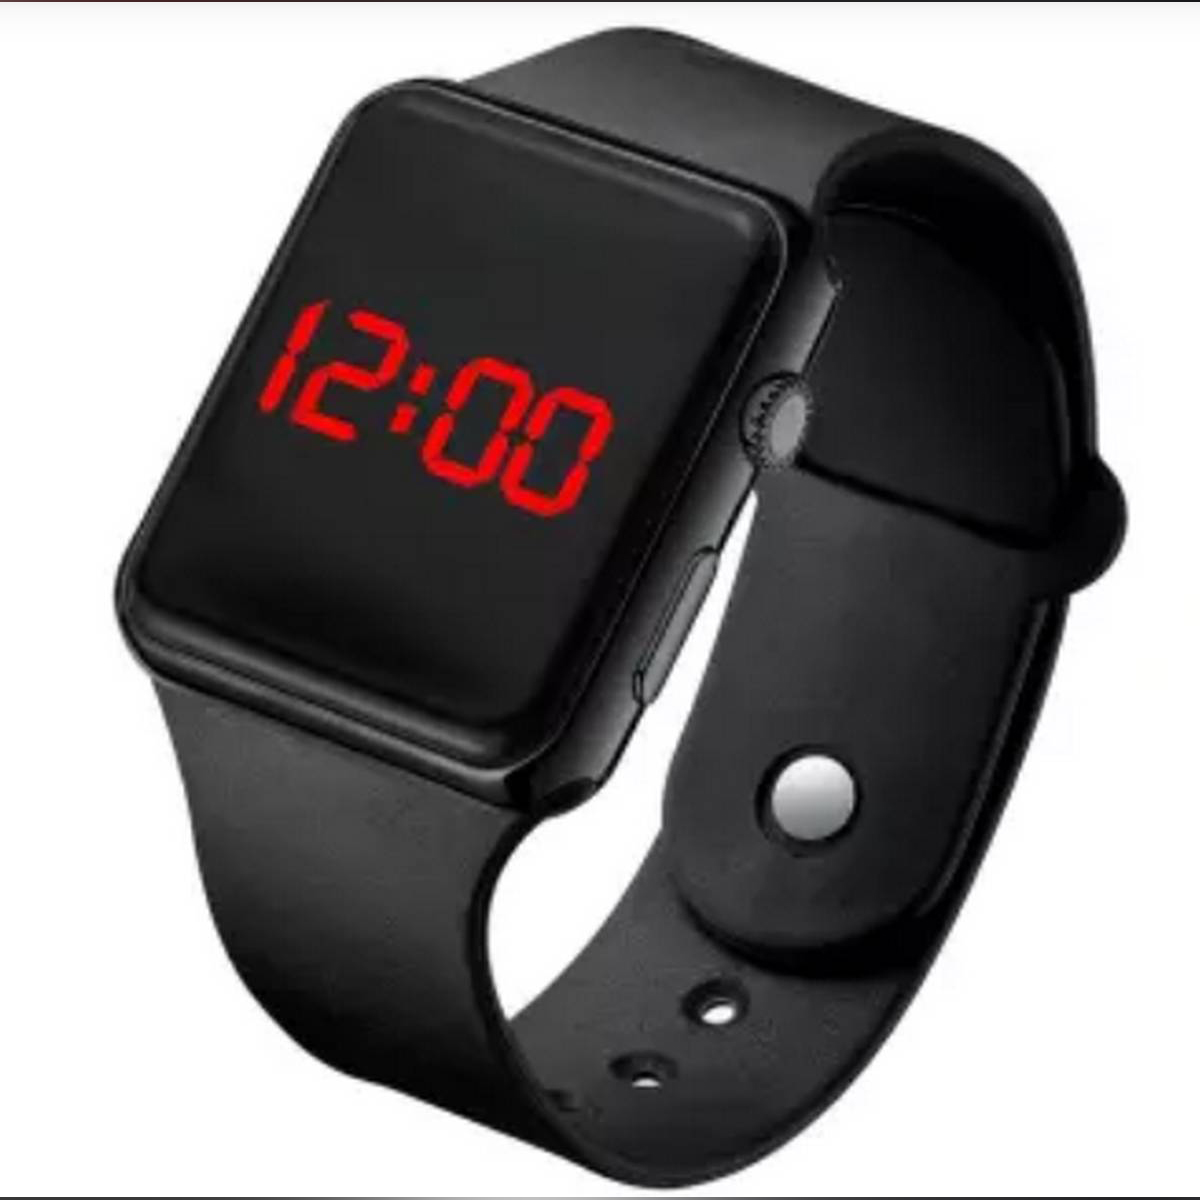 Sport Silicone LED Watches Fashion Hot Selling Wrist Watch Digital Cool Gift Clock